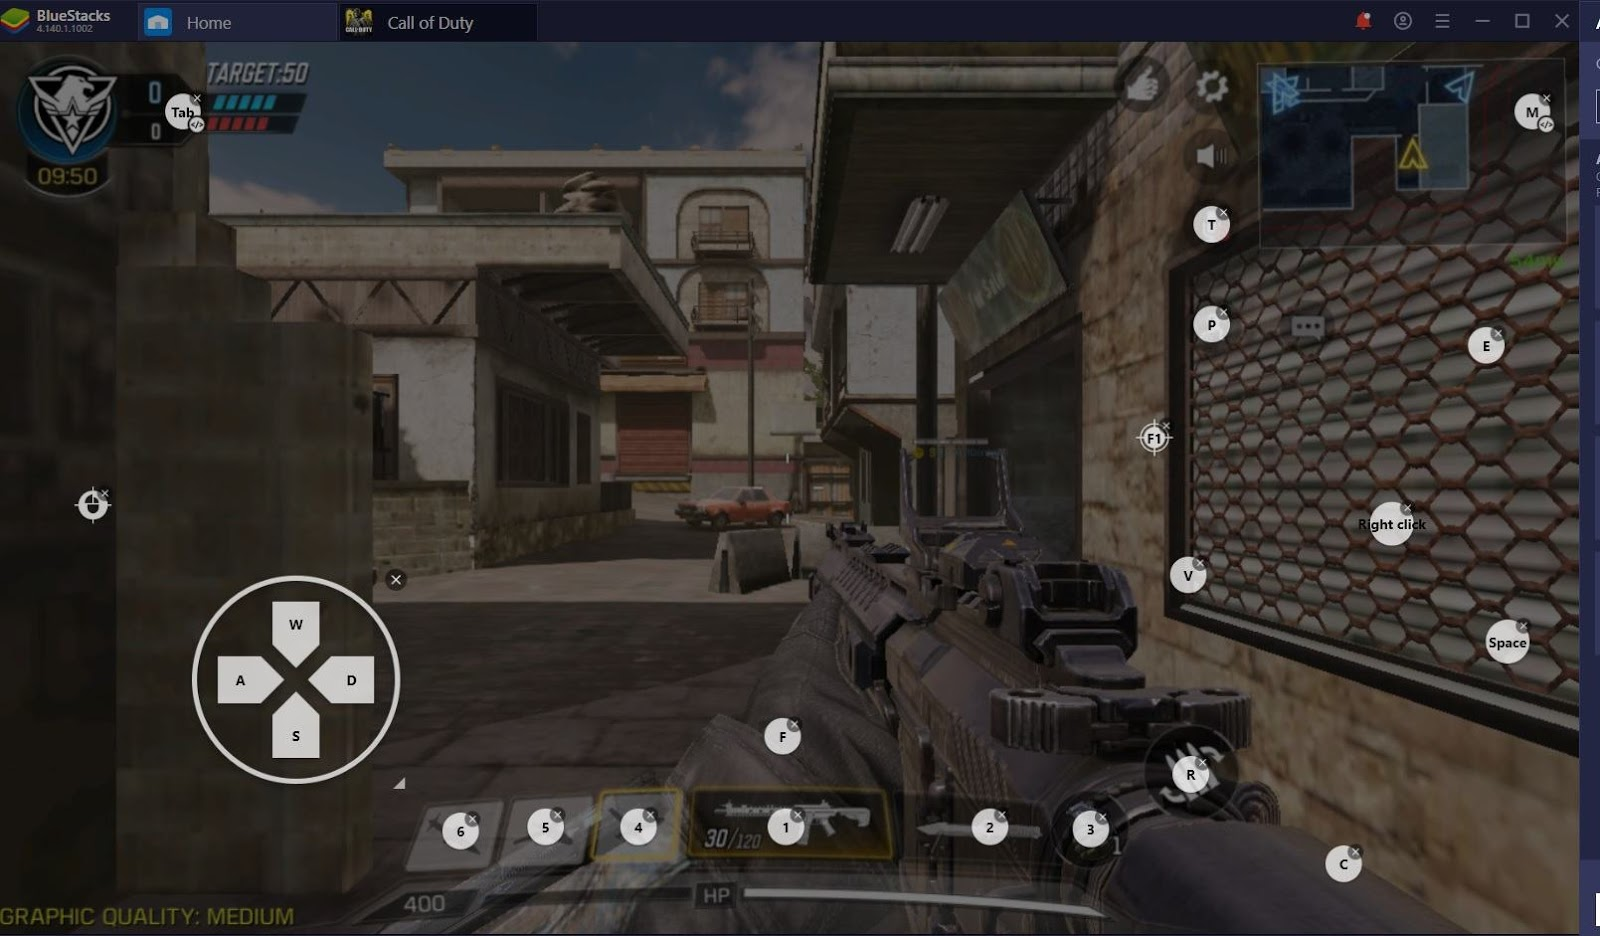 How to Play Call Of Duty Mobile in PC bluestacks